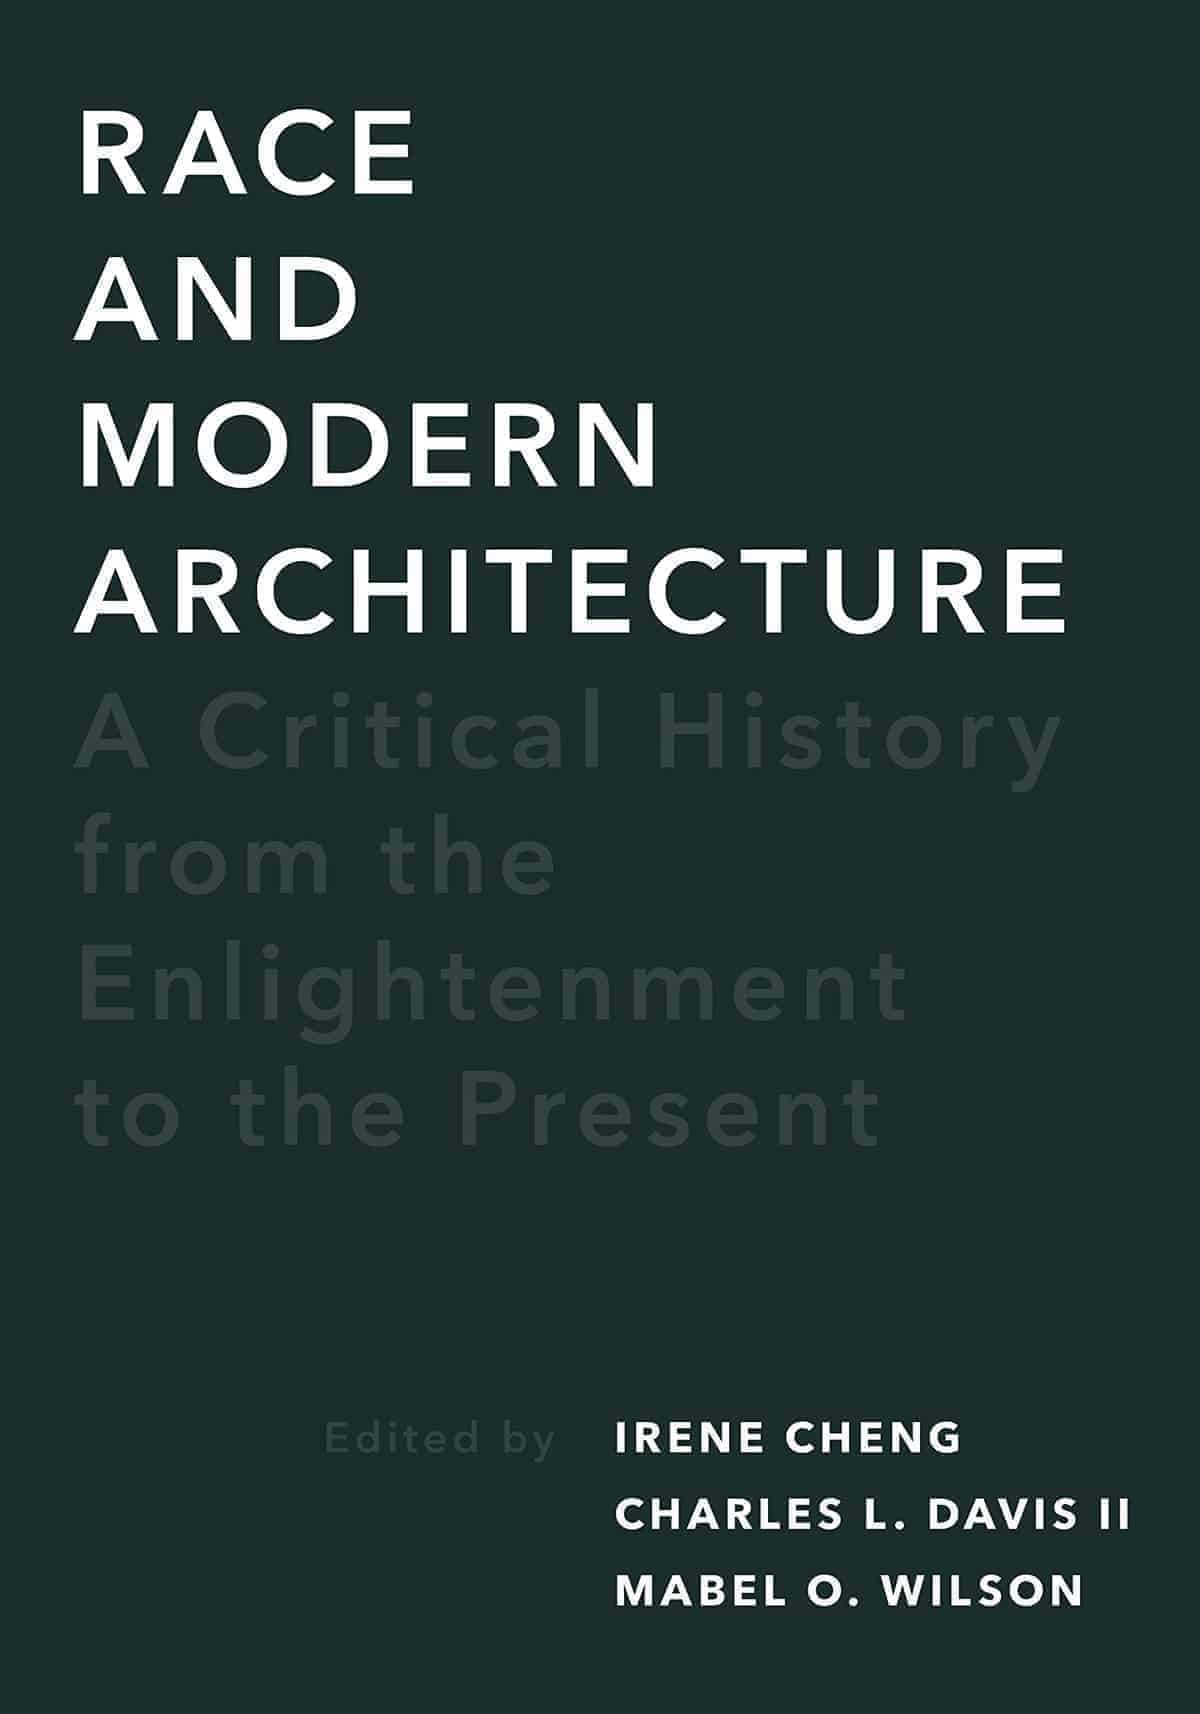 Race and Modern Architecture: A Critical History from the Enlightenment to the Present